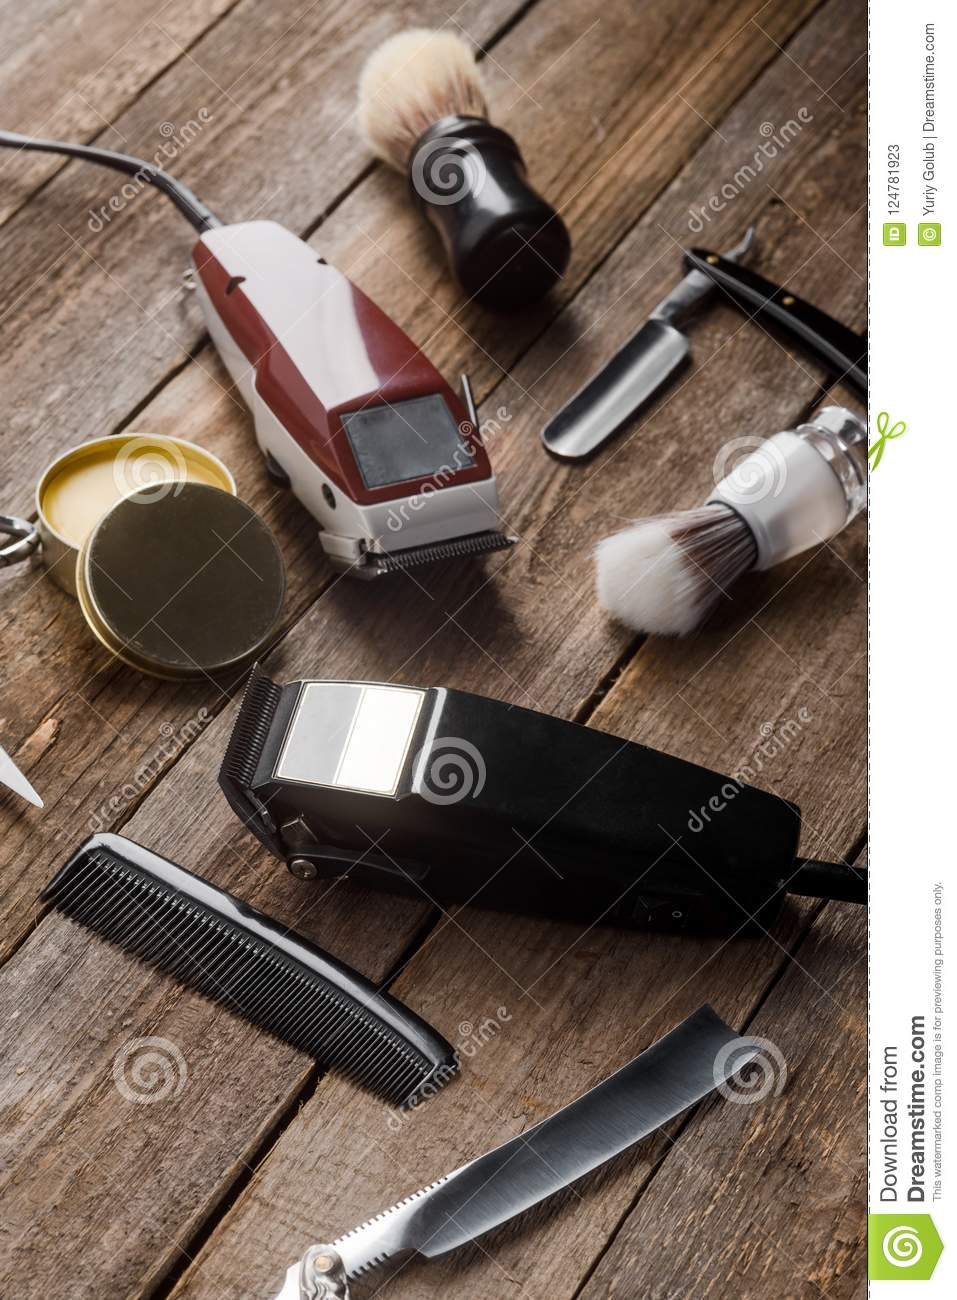 Electric hair trimmers and brushes